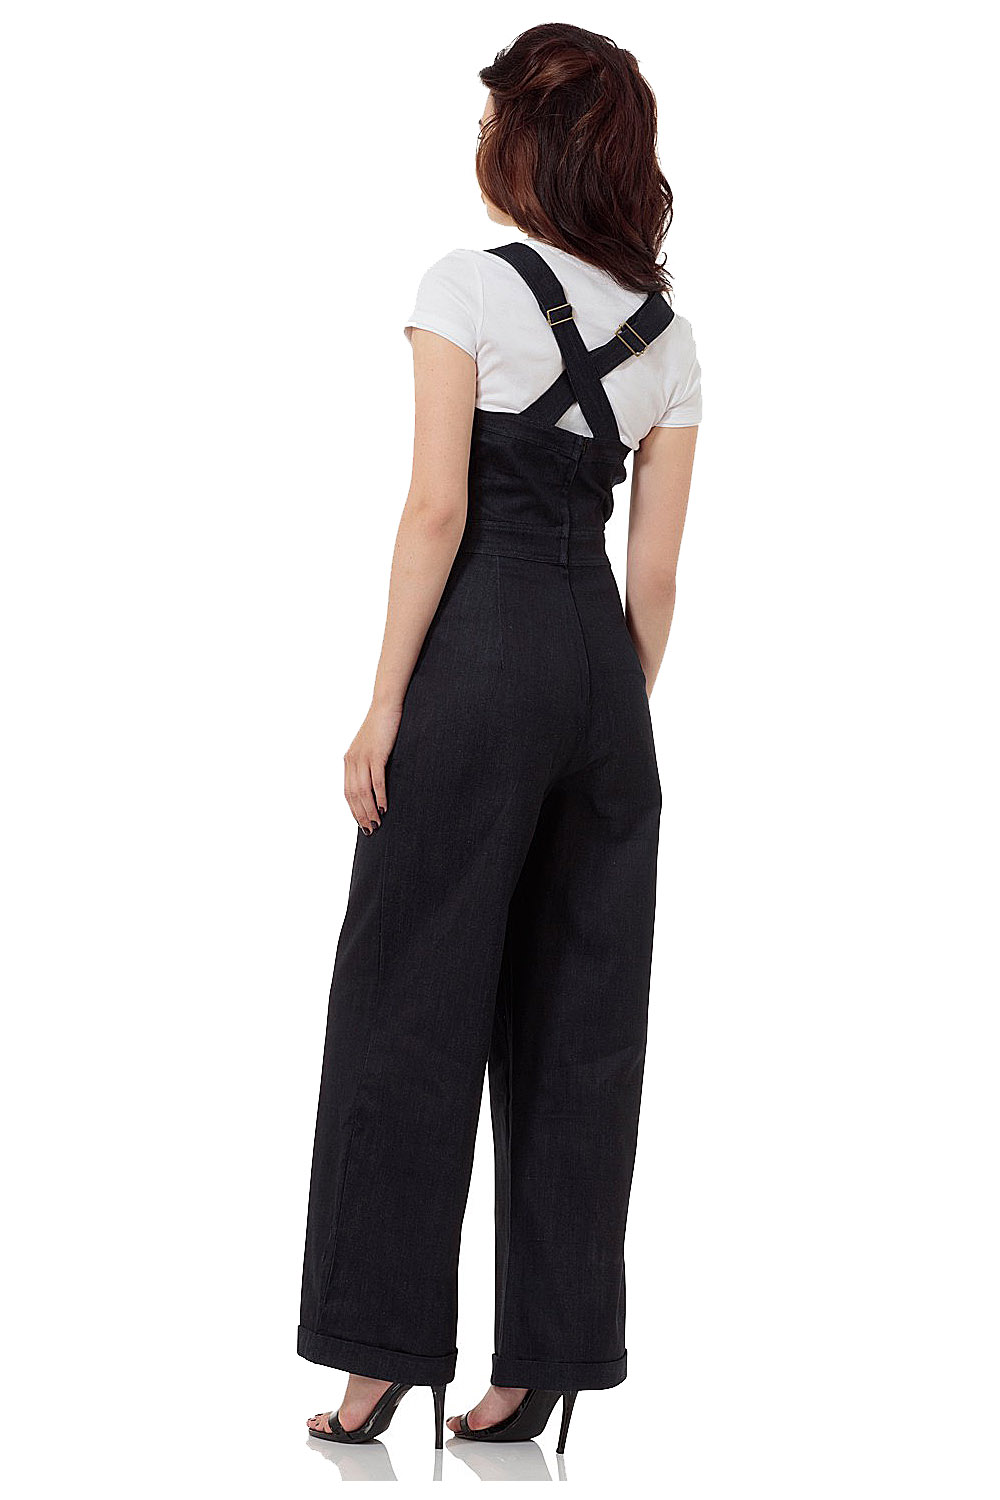 Vixen Rosie The Riverter 40s Sweetheart Jumpsuit